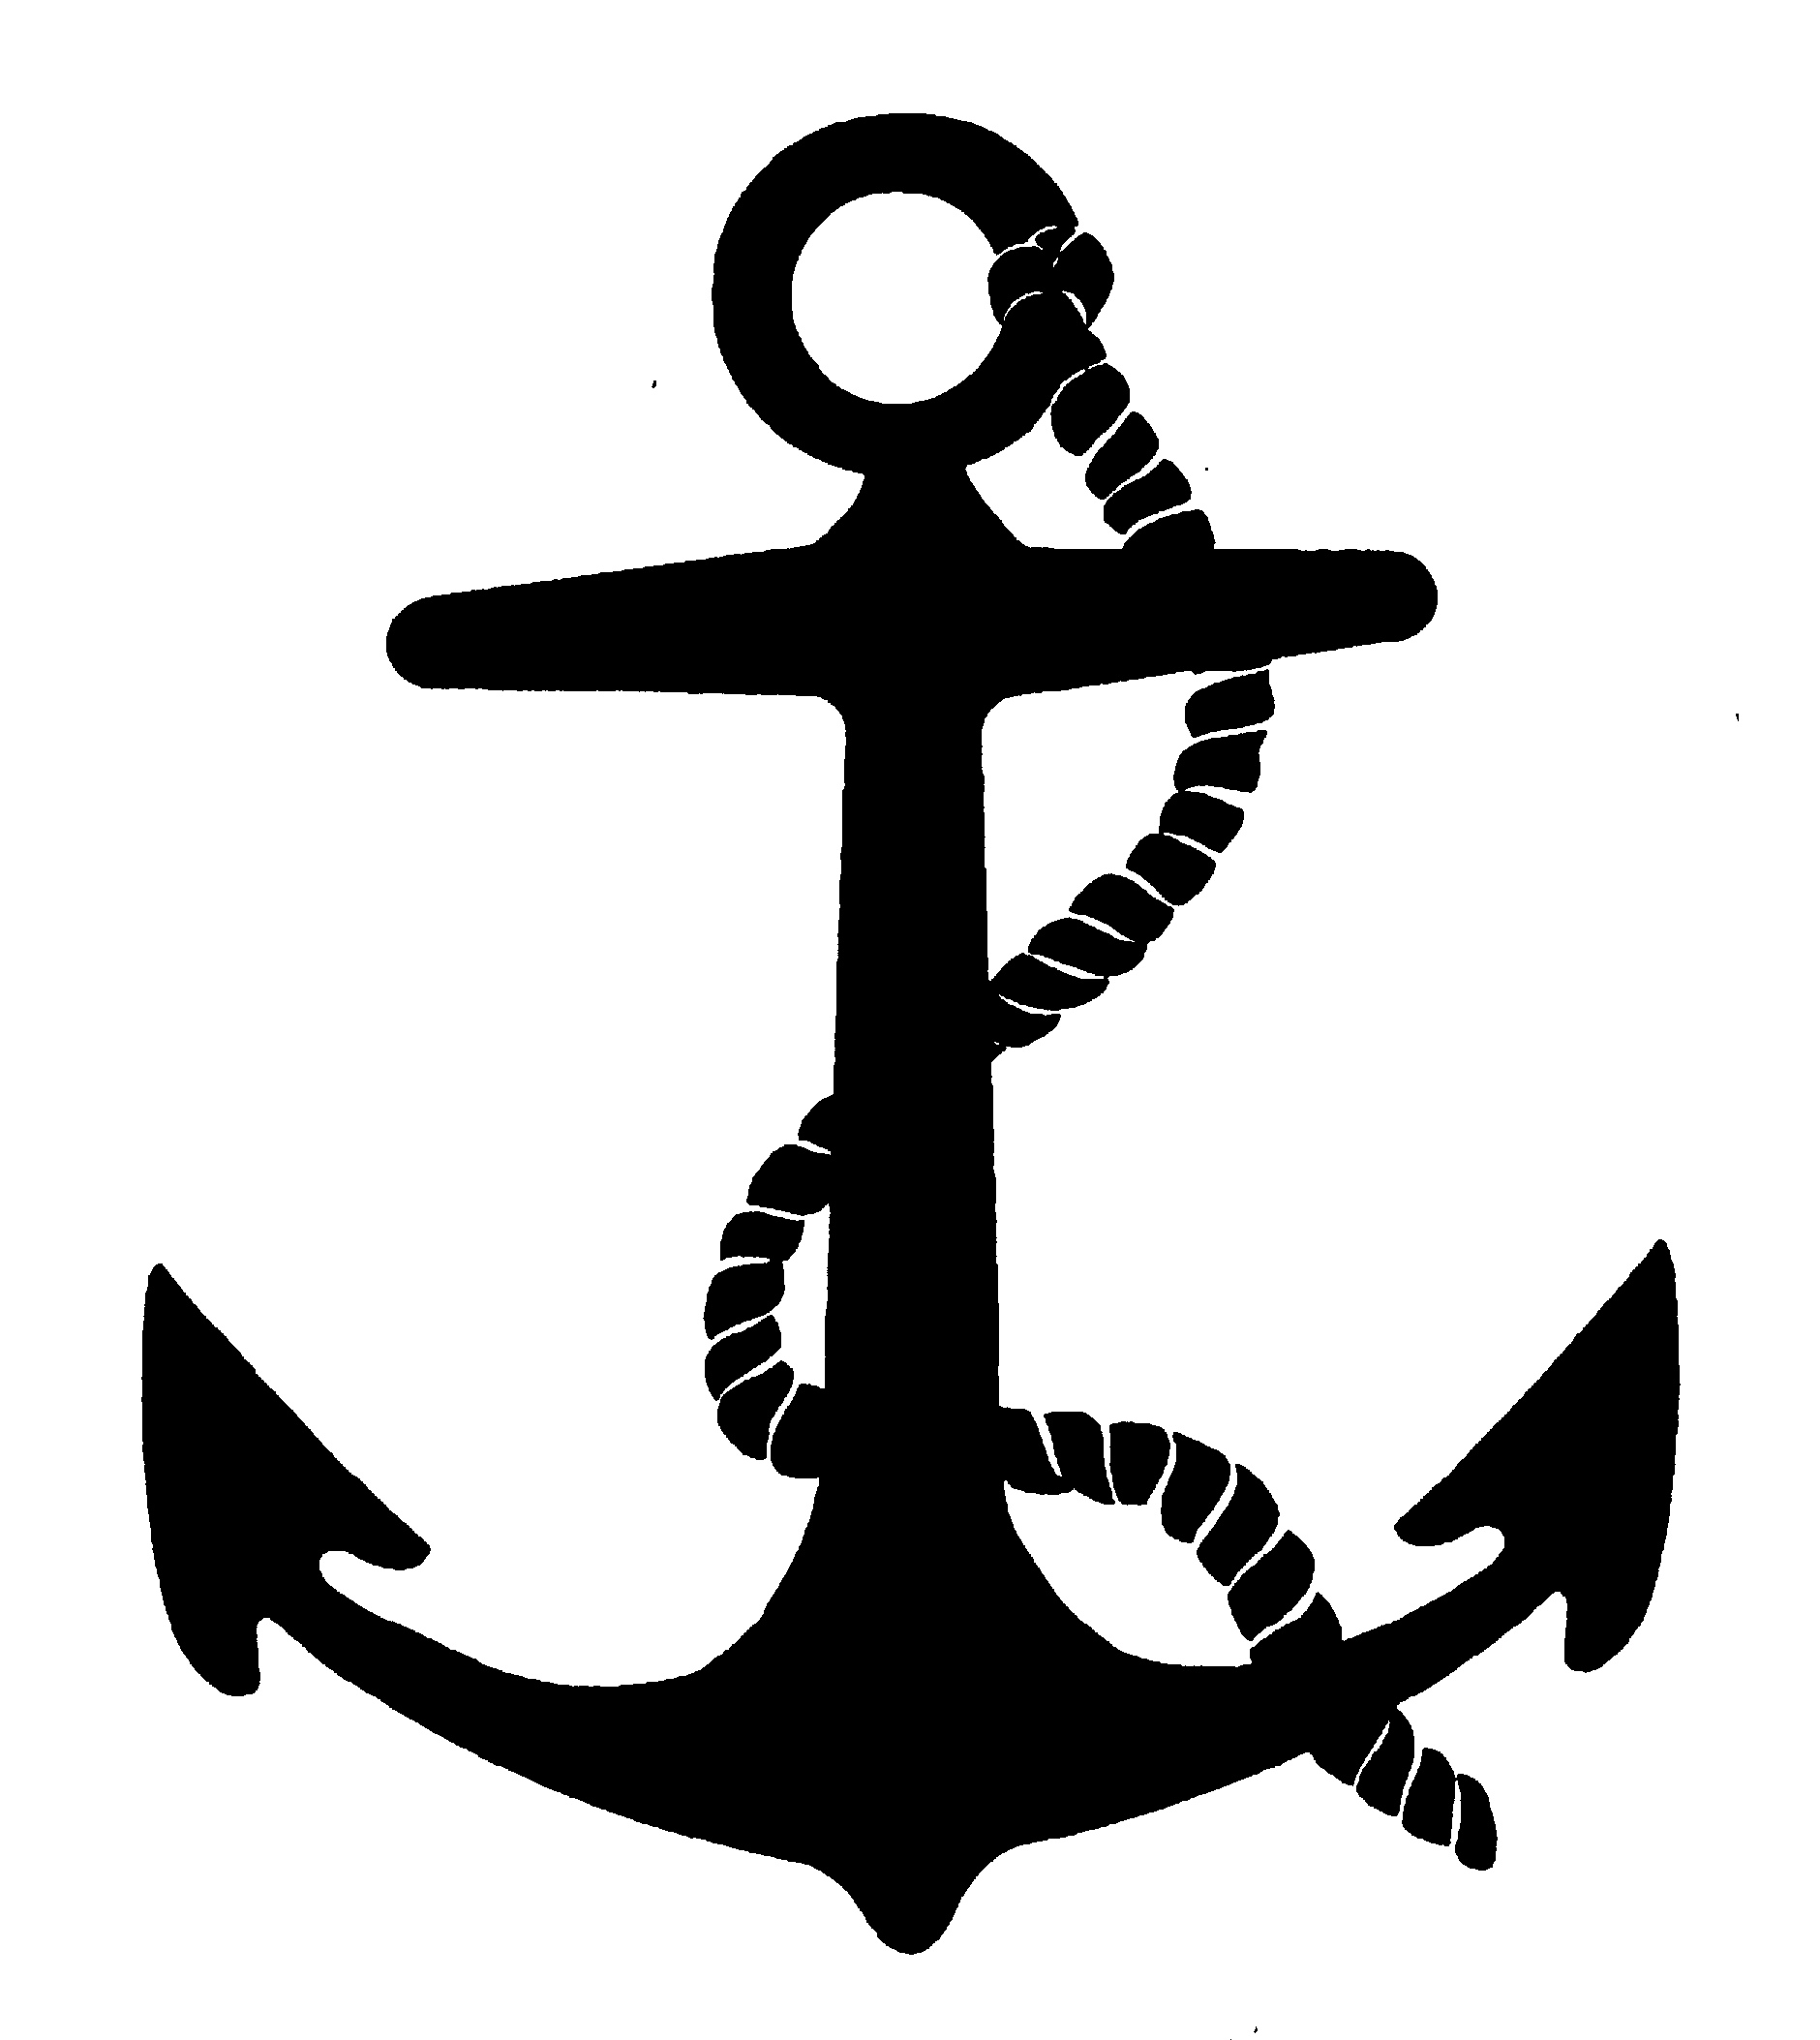 Anchor clipart french. About clip art and